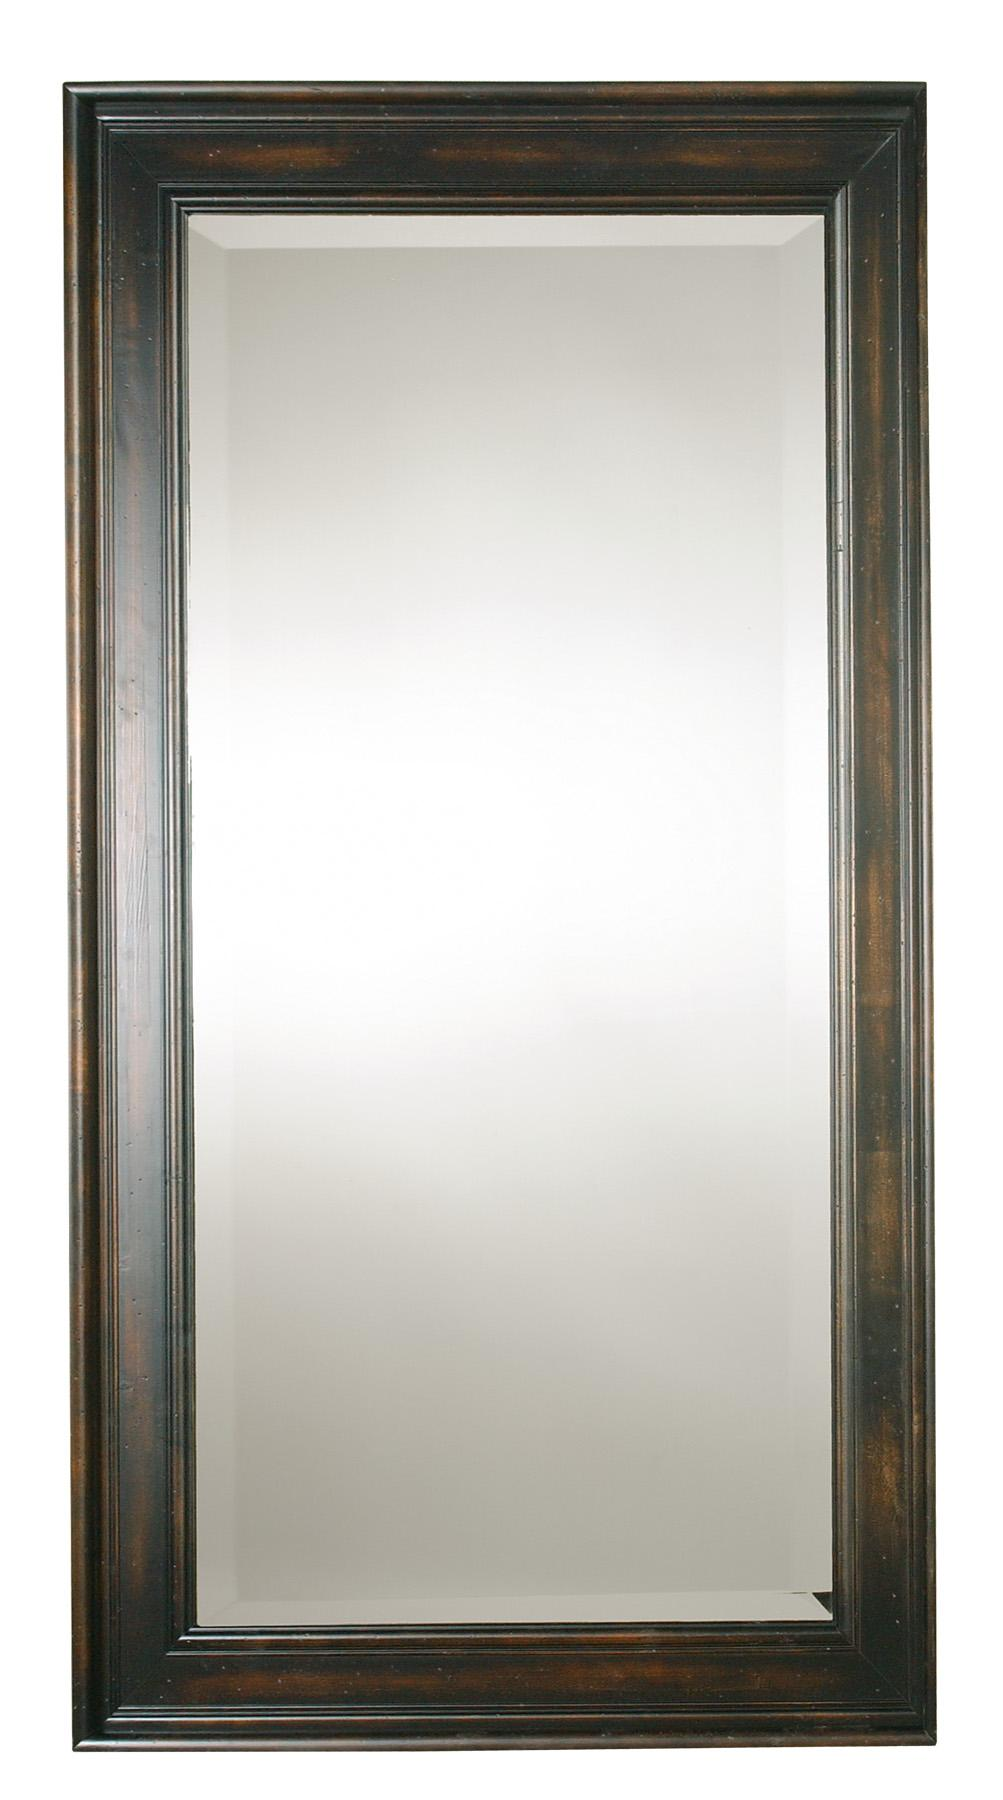 Uttermost Mirrors Palmer Dark Mirror - Item Number: 01018 B